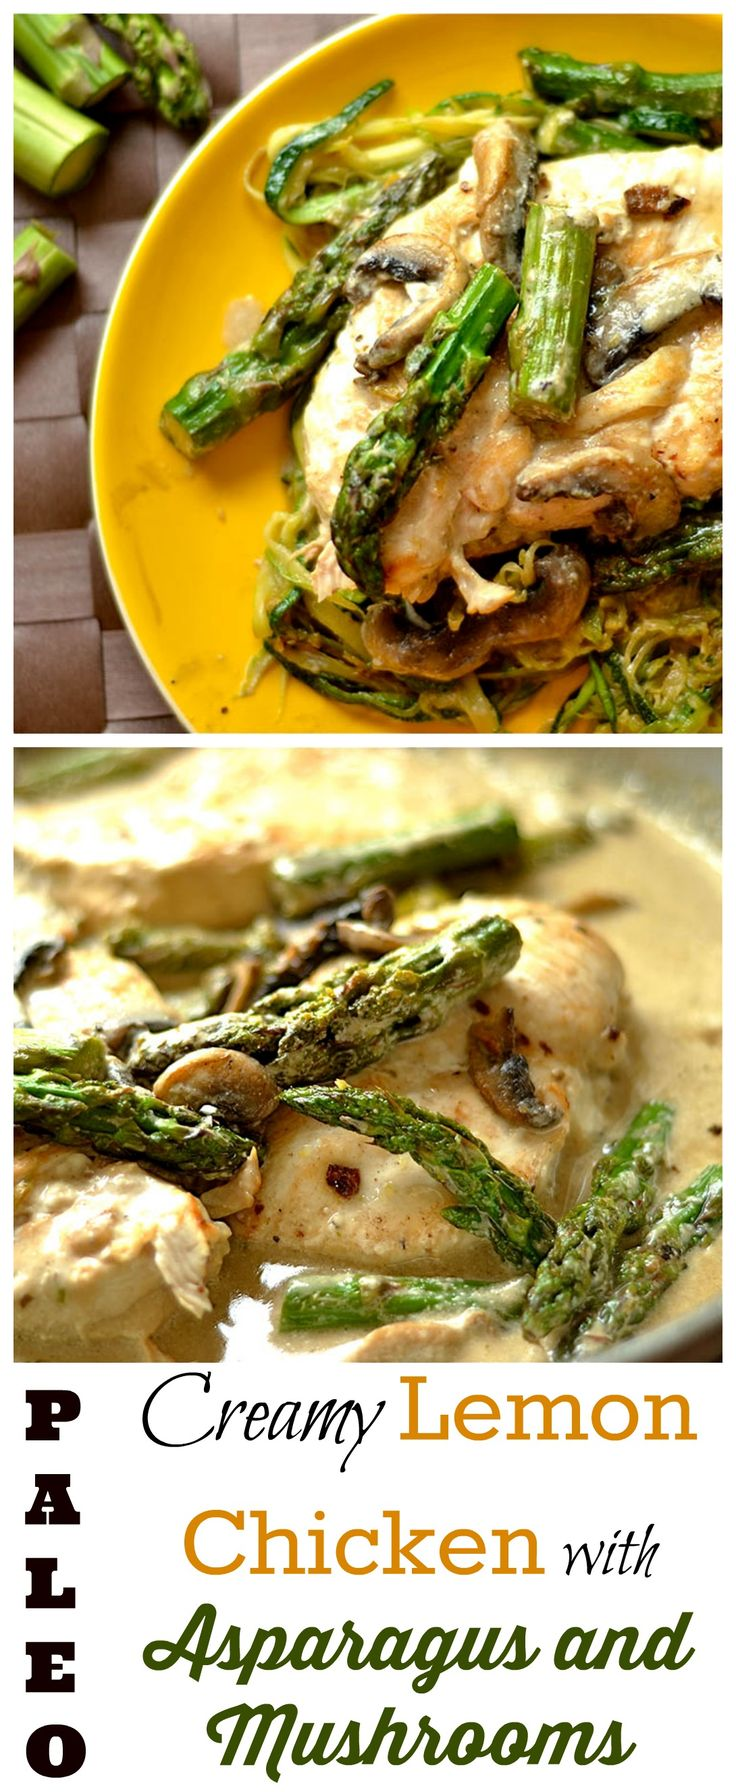 Delicious creamy chicken that is dairy free, Paleo, and Gluten-Free.